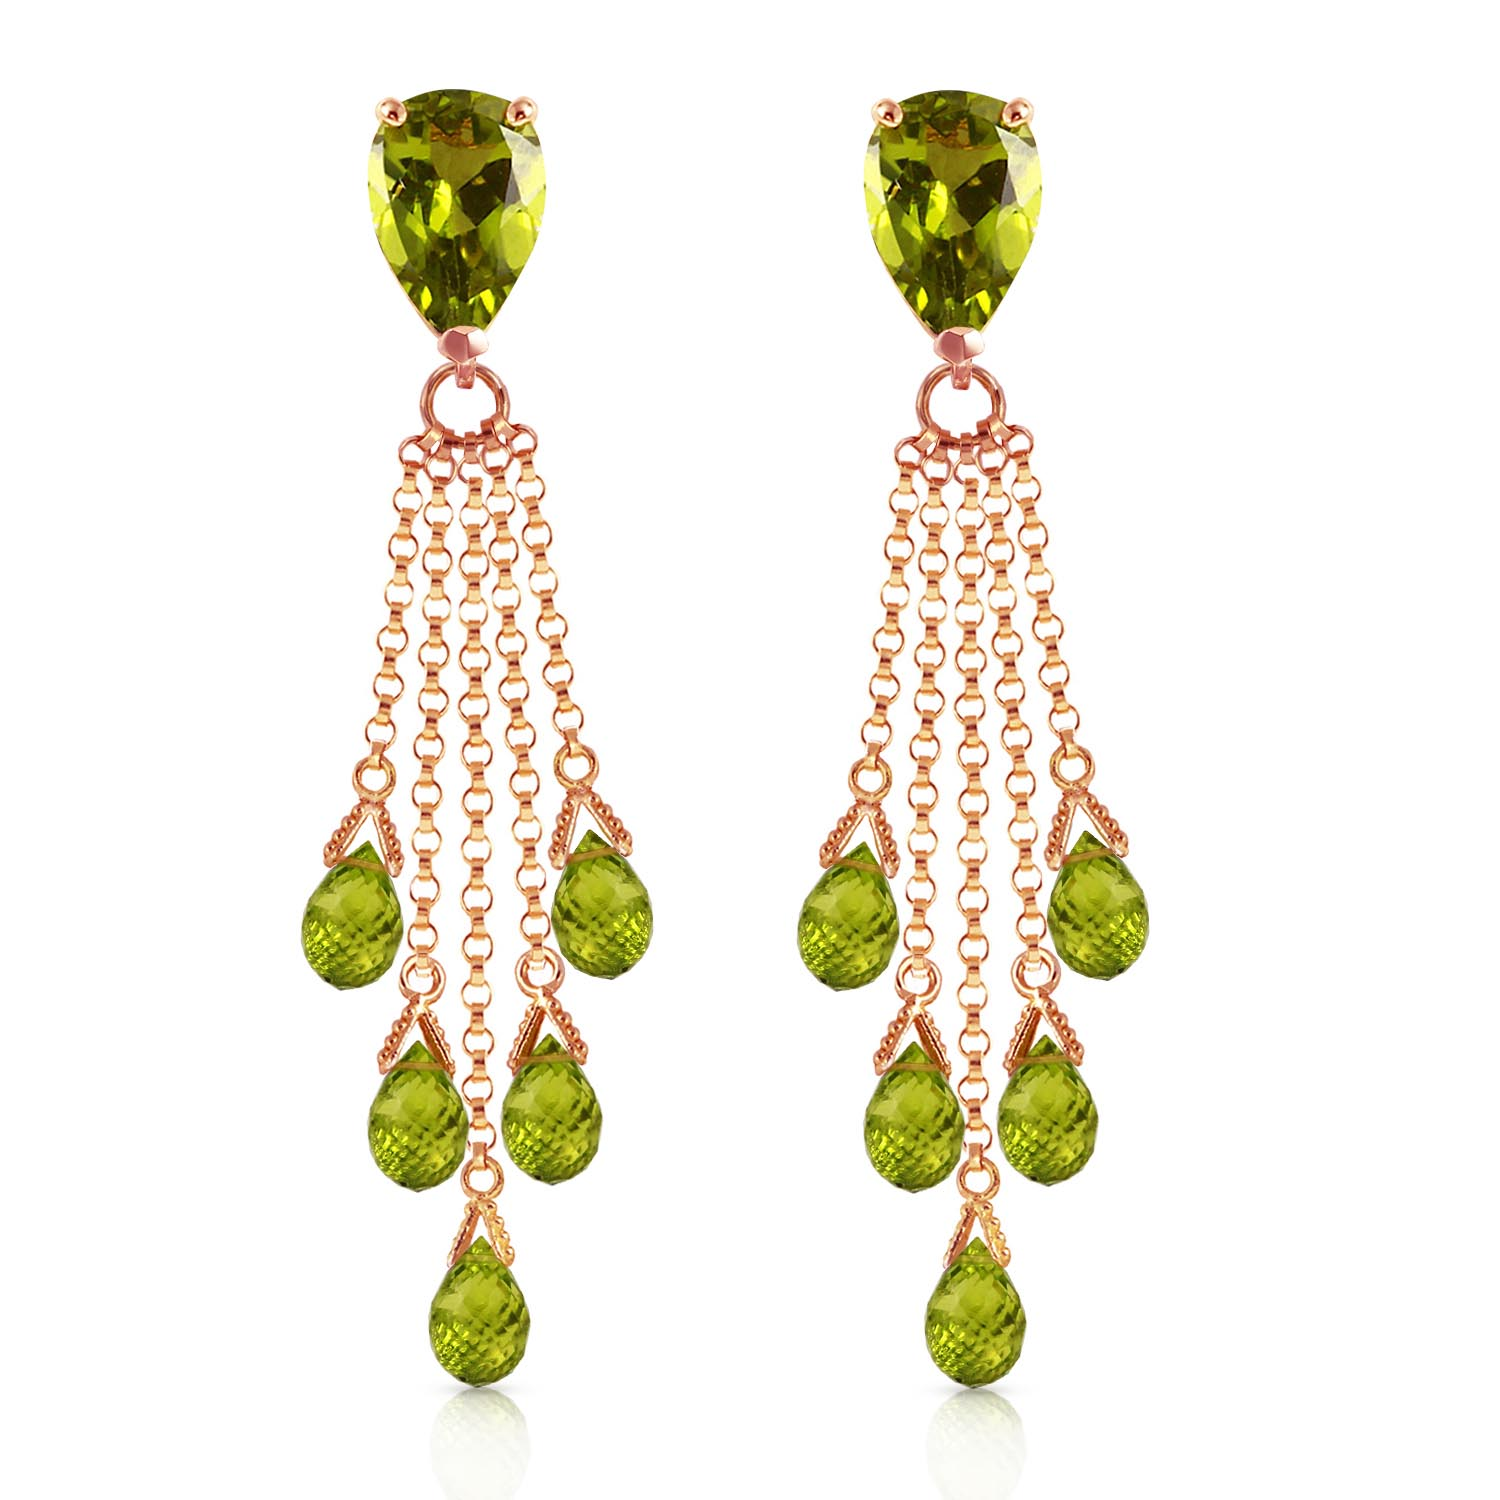 Peridot Comet Tail Drop Earrings 15.5ctw in 14K Rose Gold